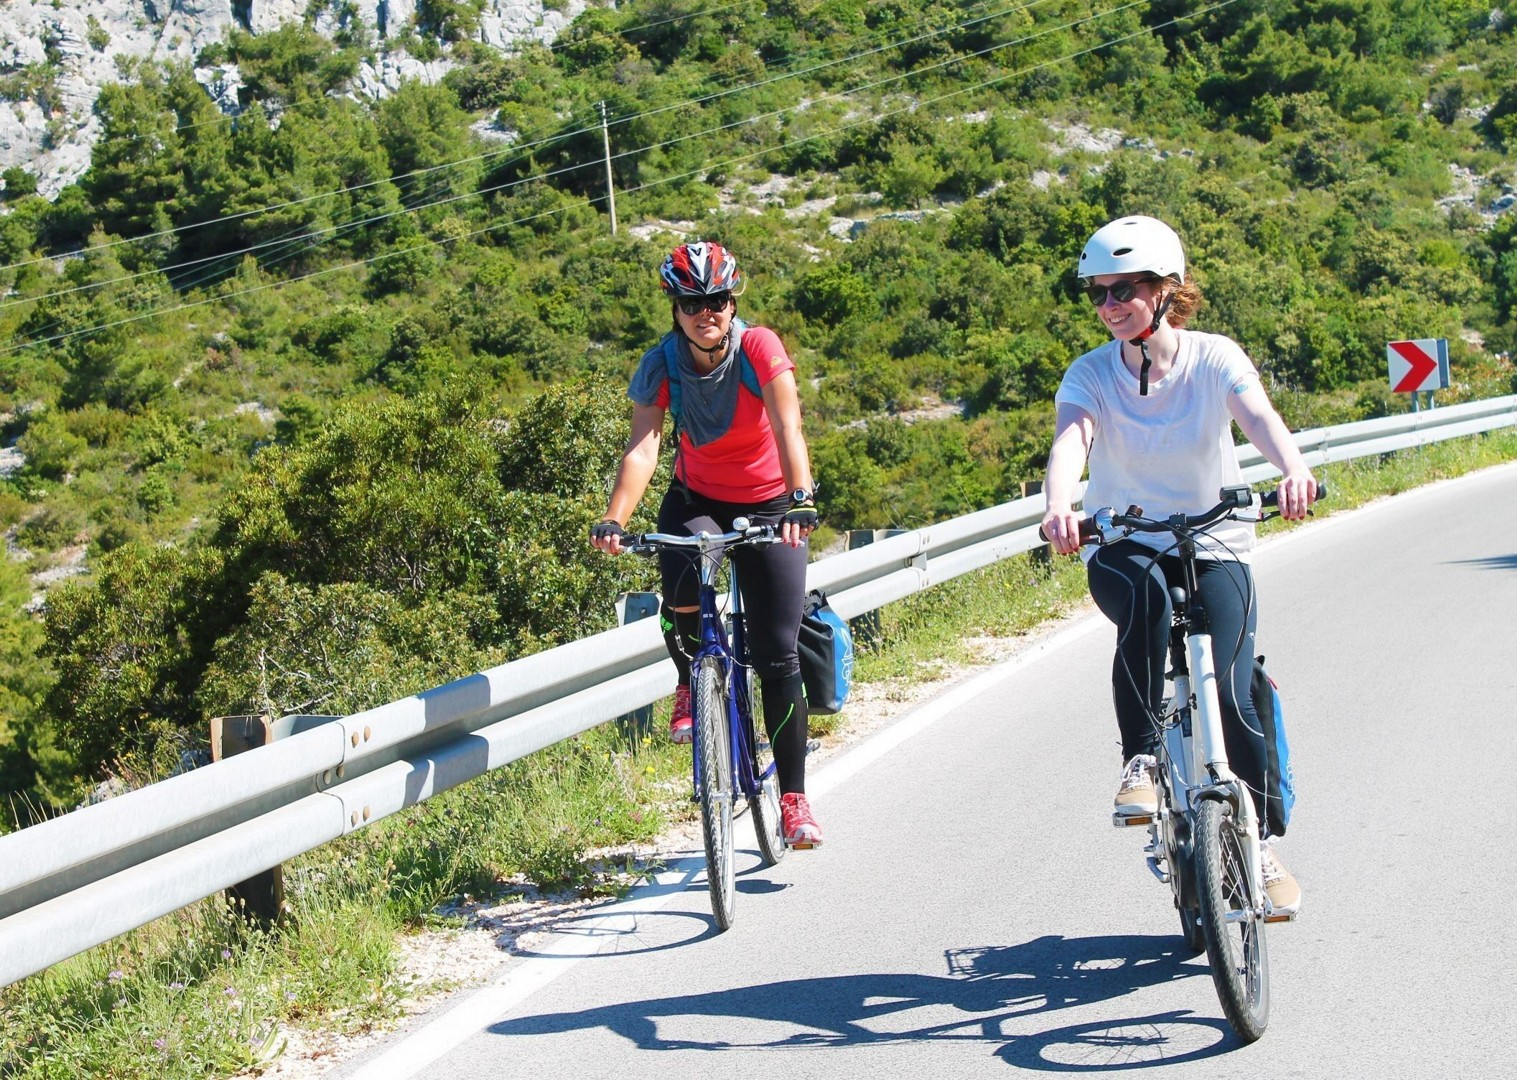 leisure-cycling-holiday-island-stunning-views-fun-filled.jpg - NEW! Croatia - Kvarner Bay Plus - Leisure Cycling